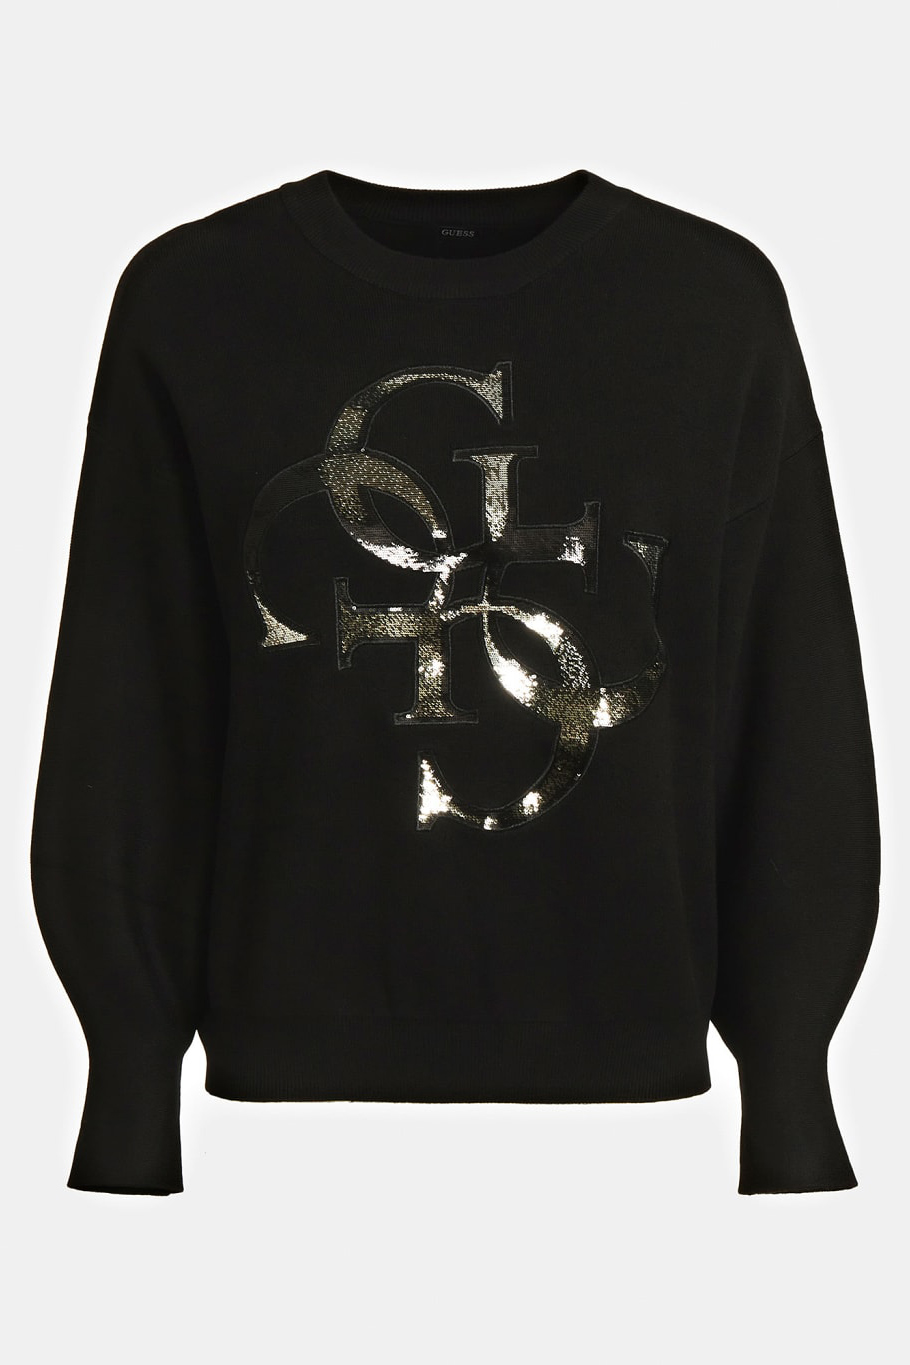 Guess negre pulover 4G Logo Embroidery Sweater Black